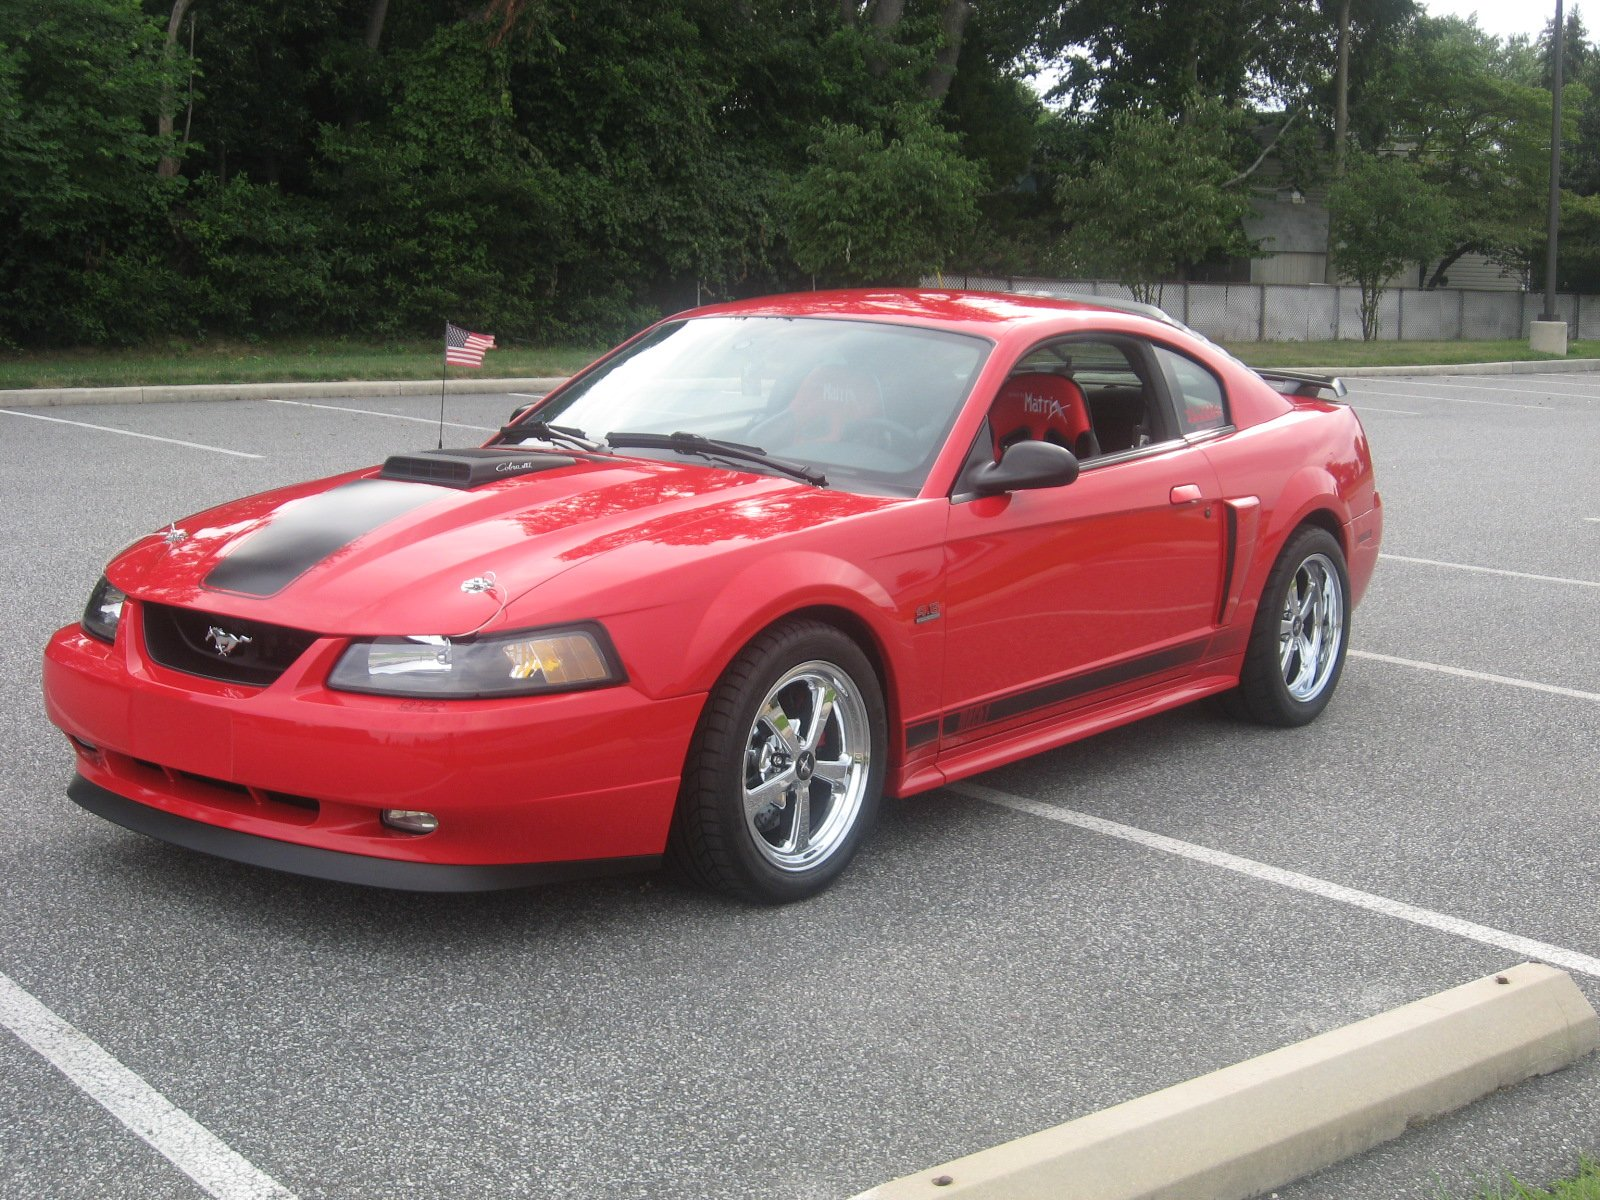 03-04 Mach 1 Value? - Ford Mustang Forum